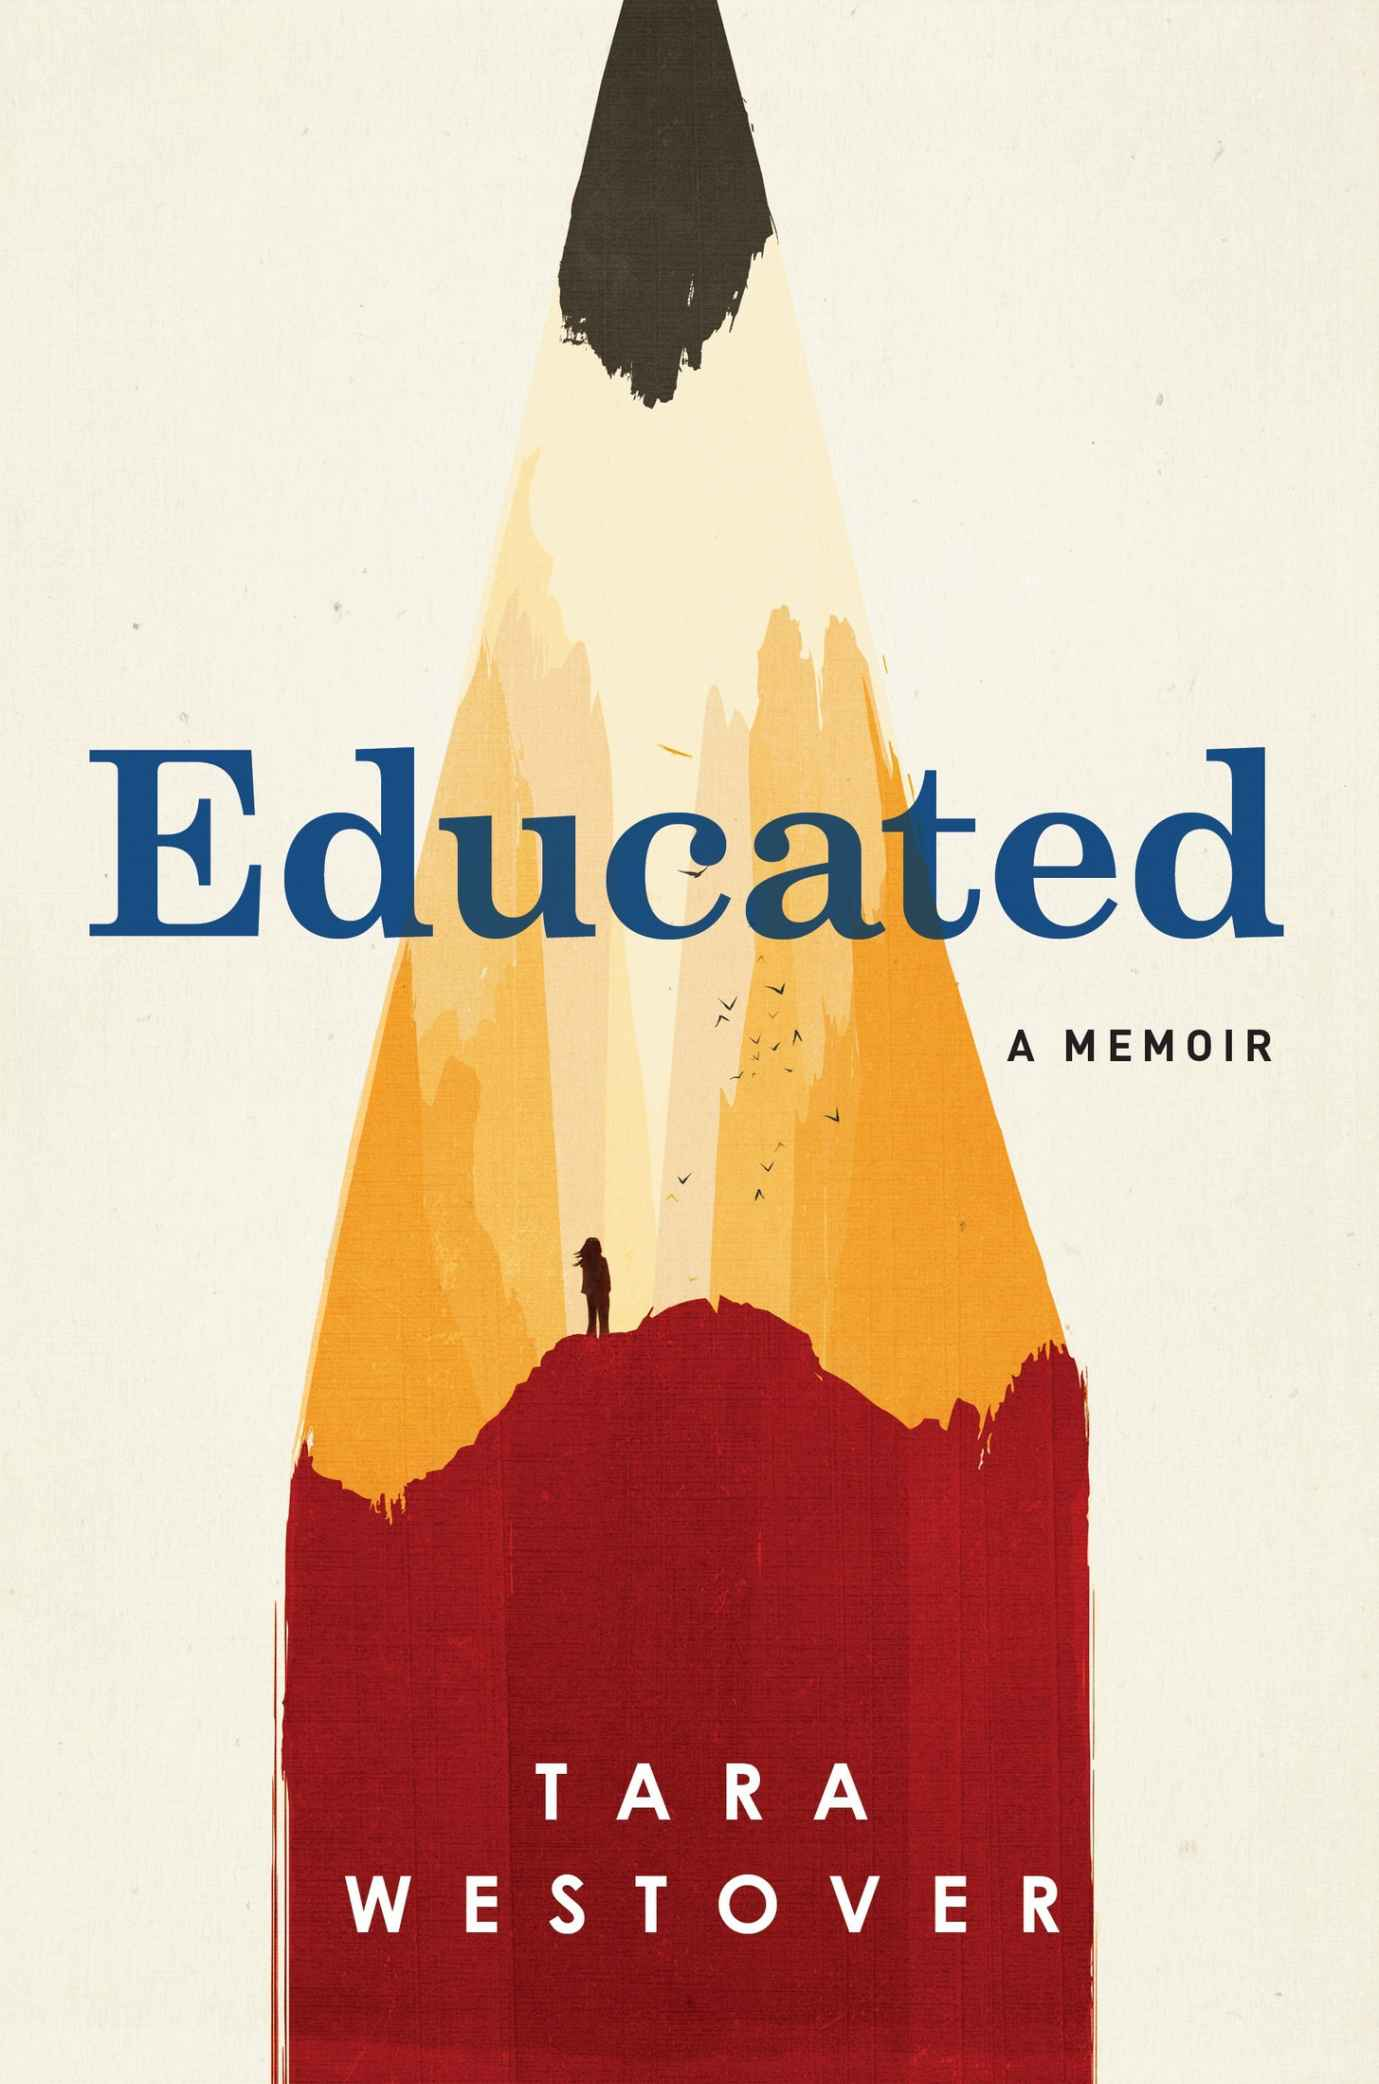 Educated: A Memoir - Tara Westover [kindle] [mobi]